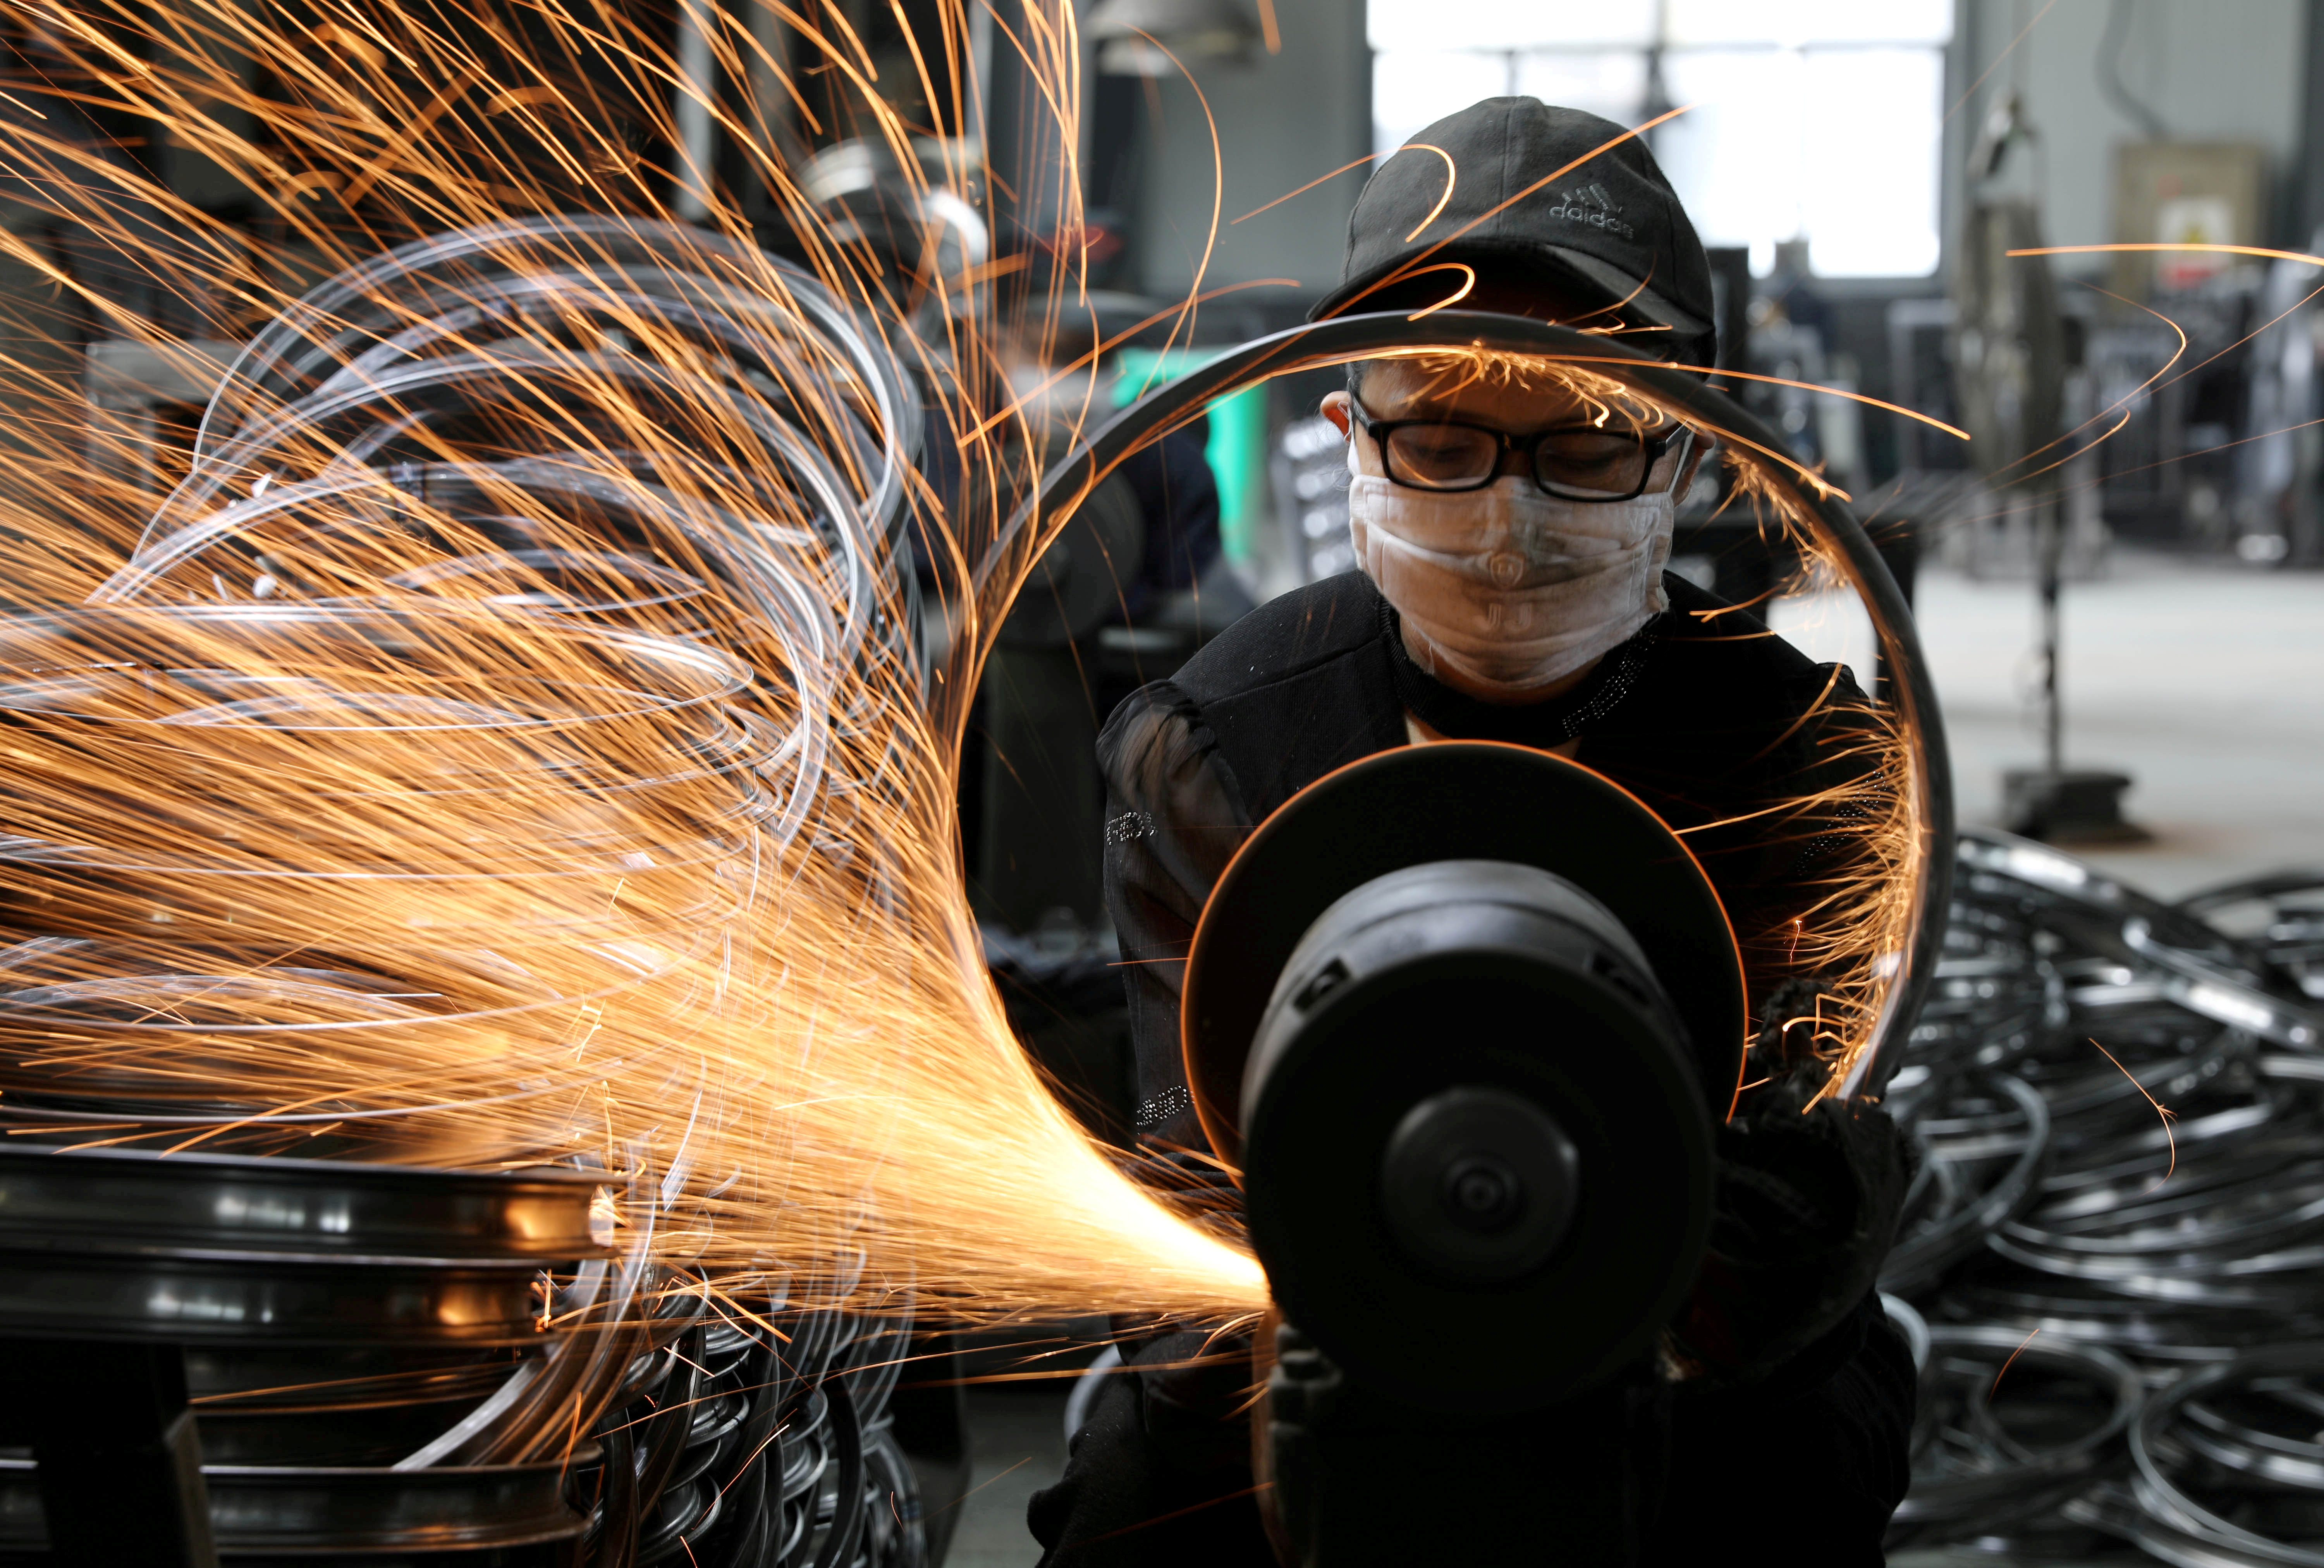 A worker welds a bicycle steel rim at a factory manufacturing sports equipment in Hangzhou, Zhejiang province, China September 2, 2019. China Daily via REUTERS/File Photo